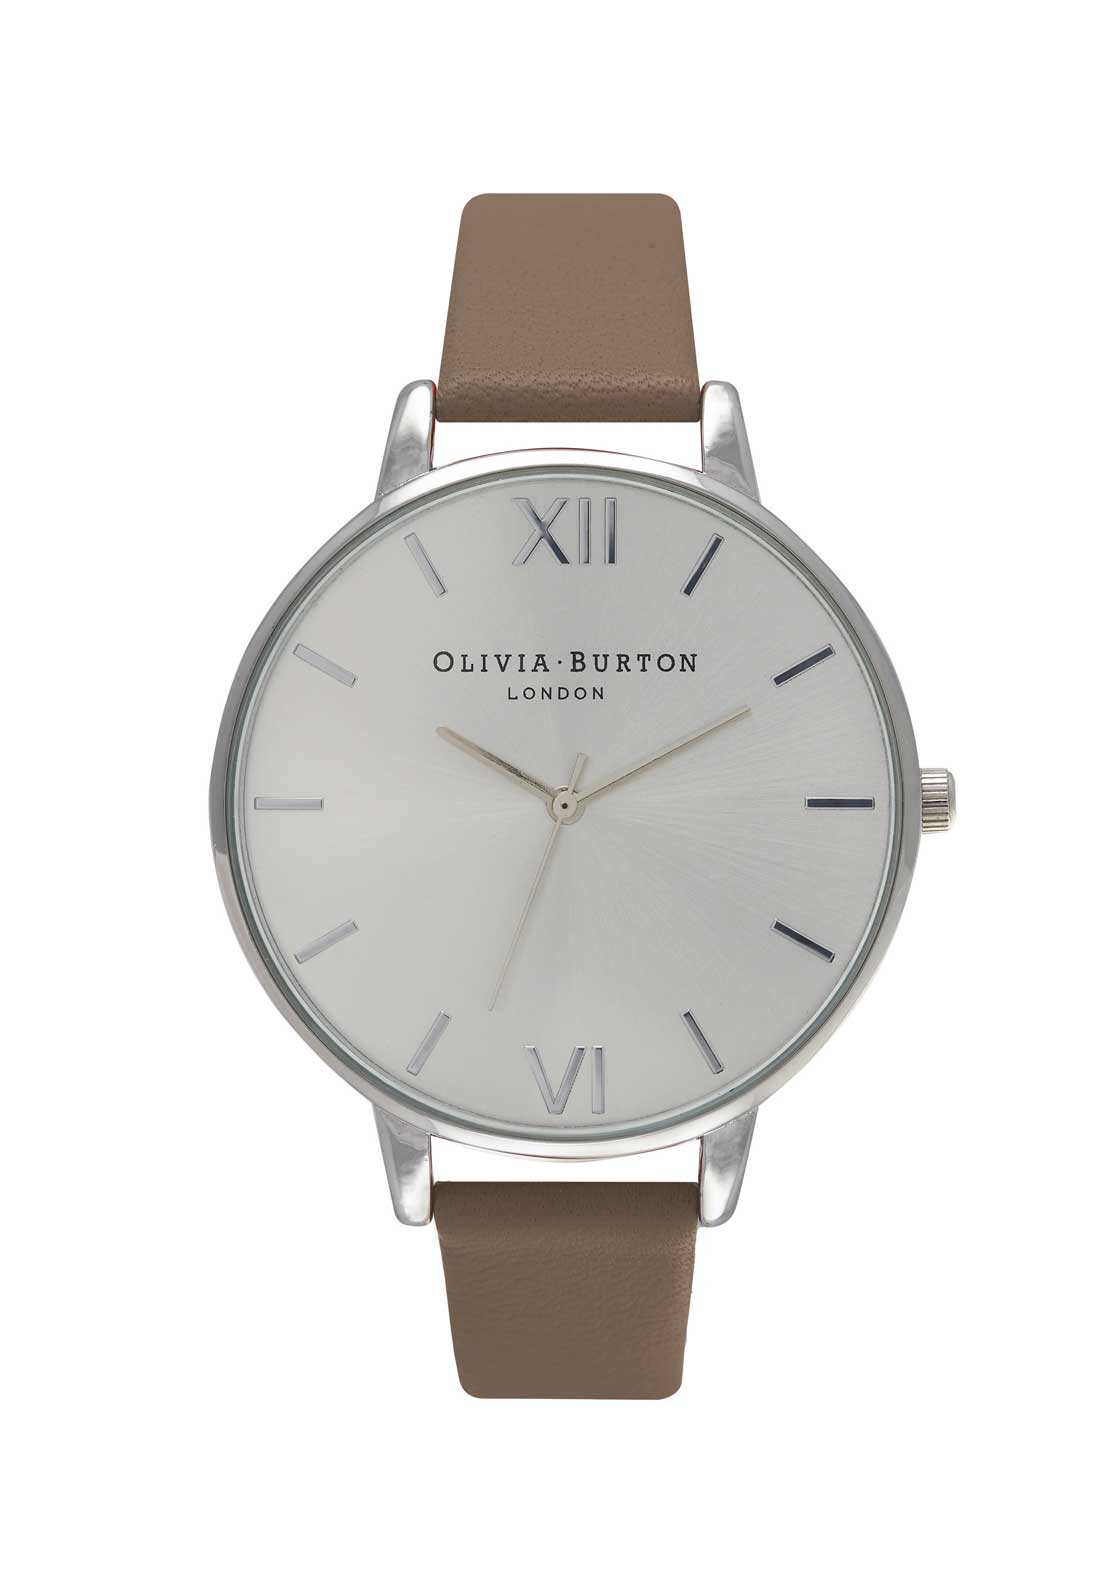 Olivia Burton Big Dial Watch in Taupe, Silver